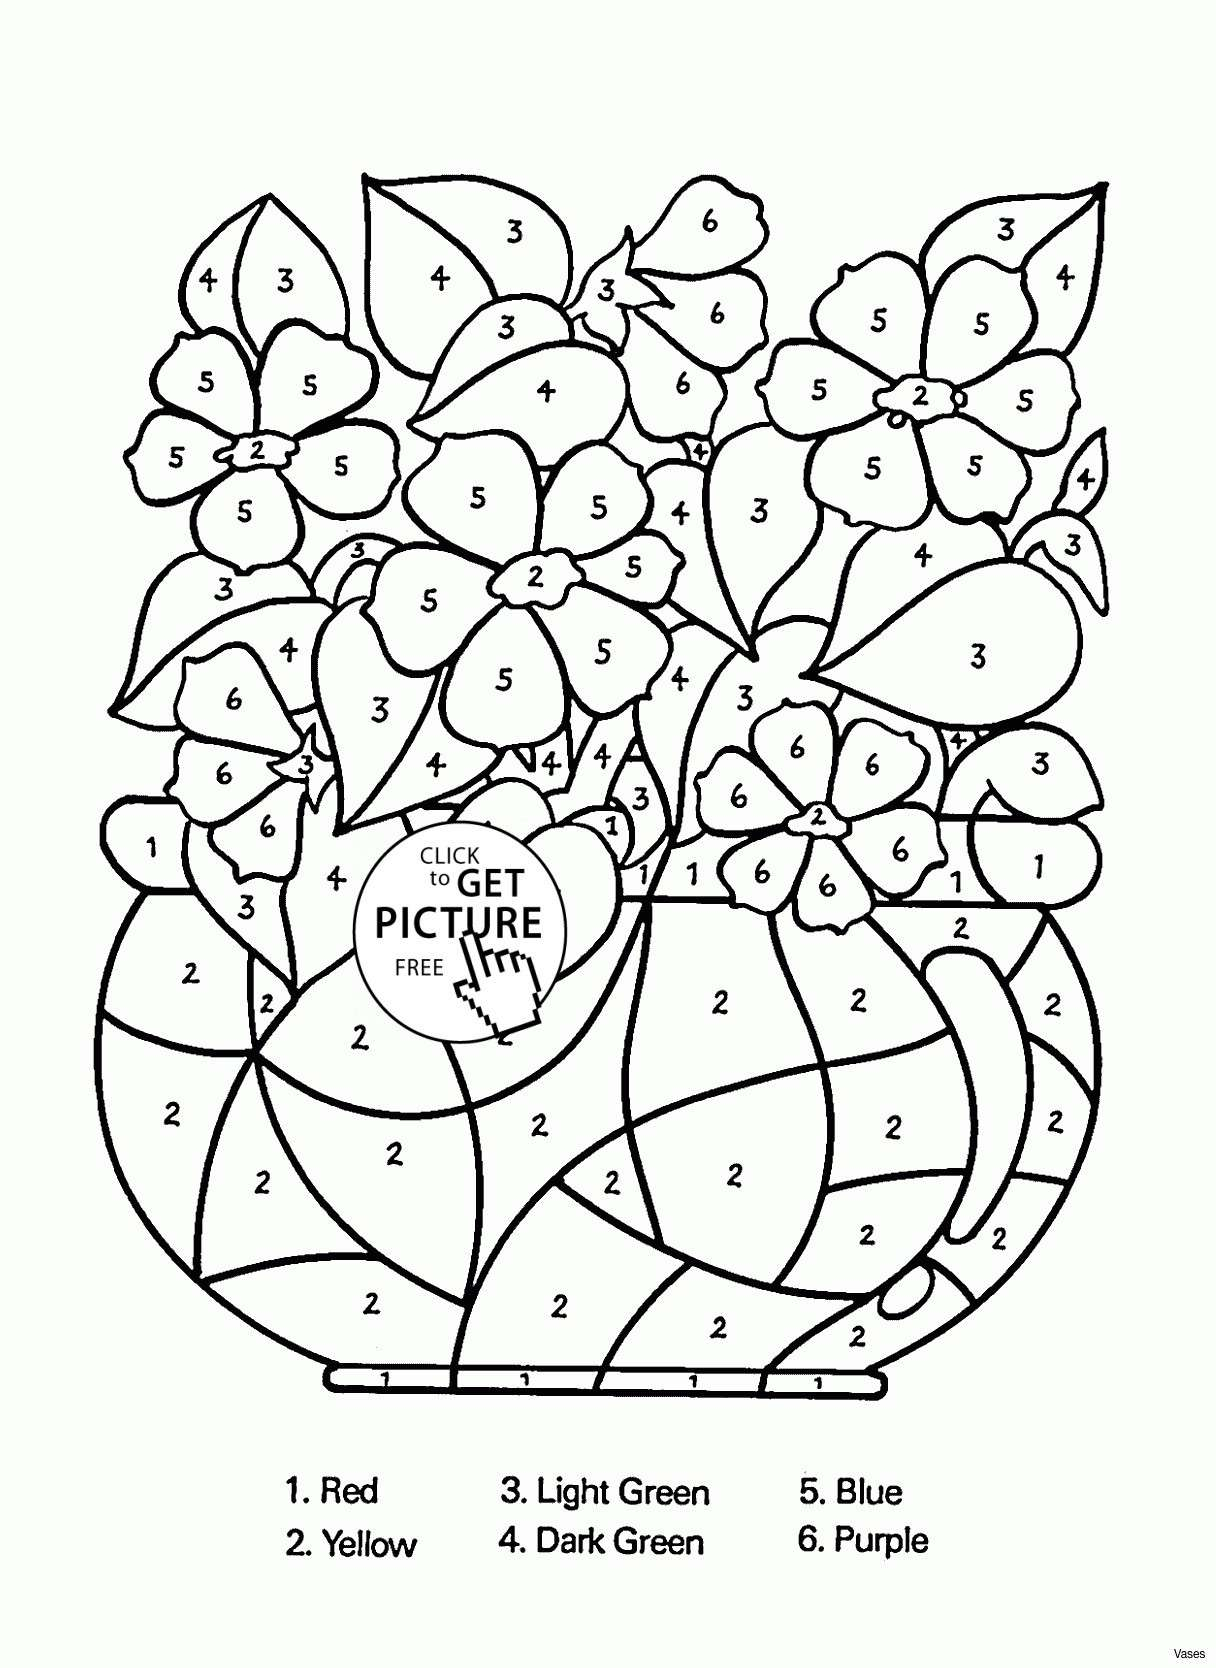 school coloring pages printable Collection-School Coloring Pages Printable Free Christmas Coloring Pages for Middle School 4-j